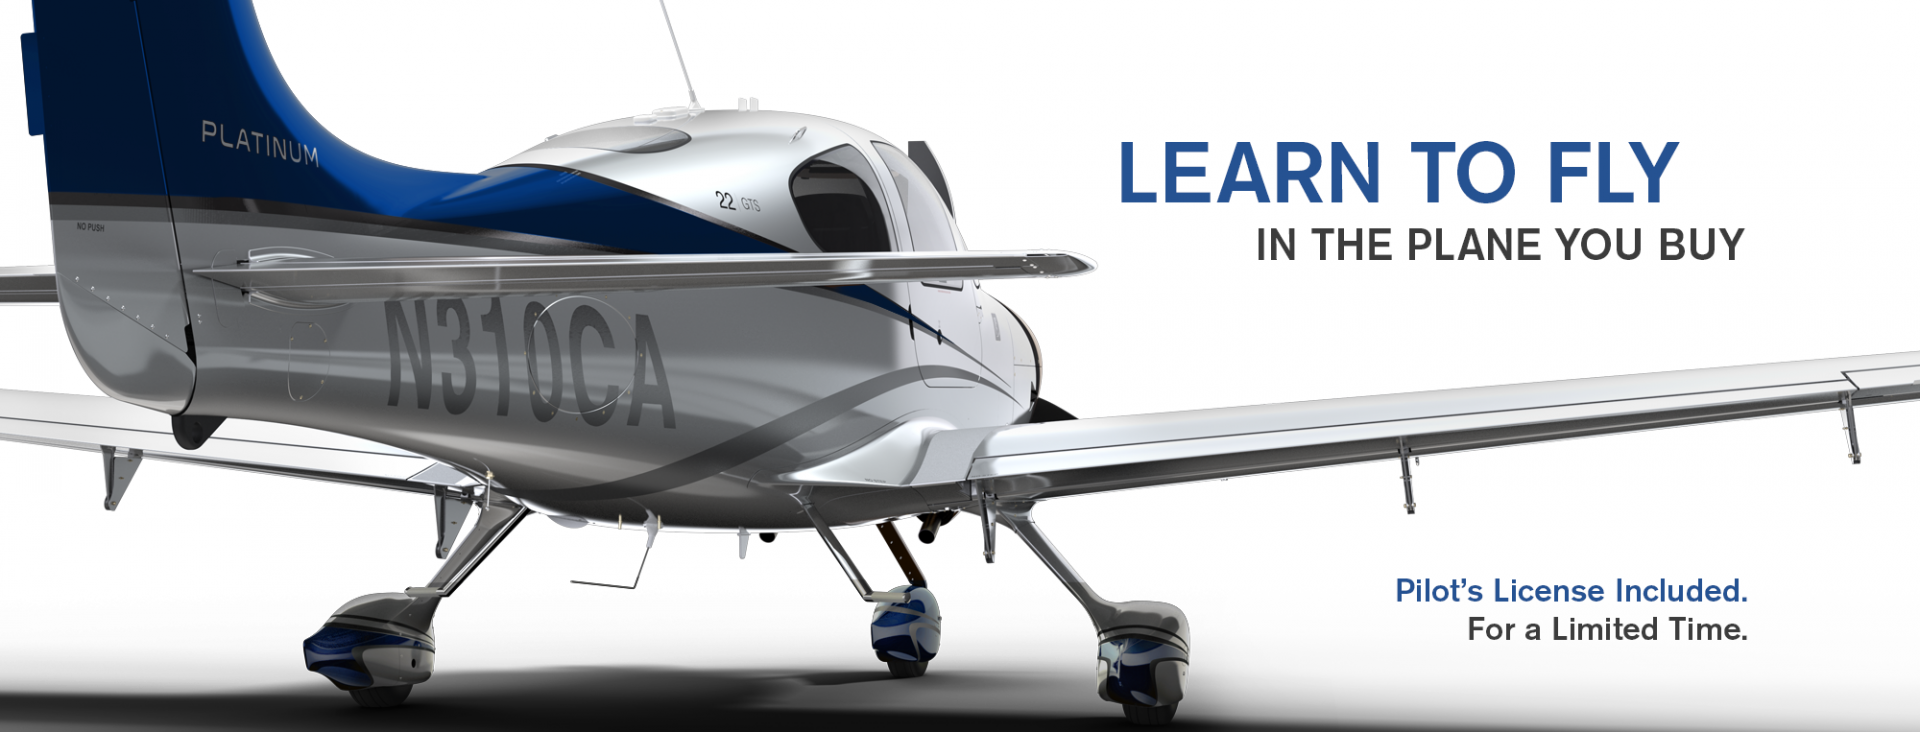 Learn to fly in the plane you buy.